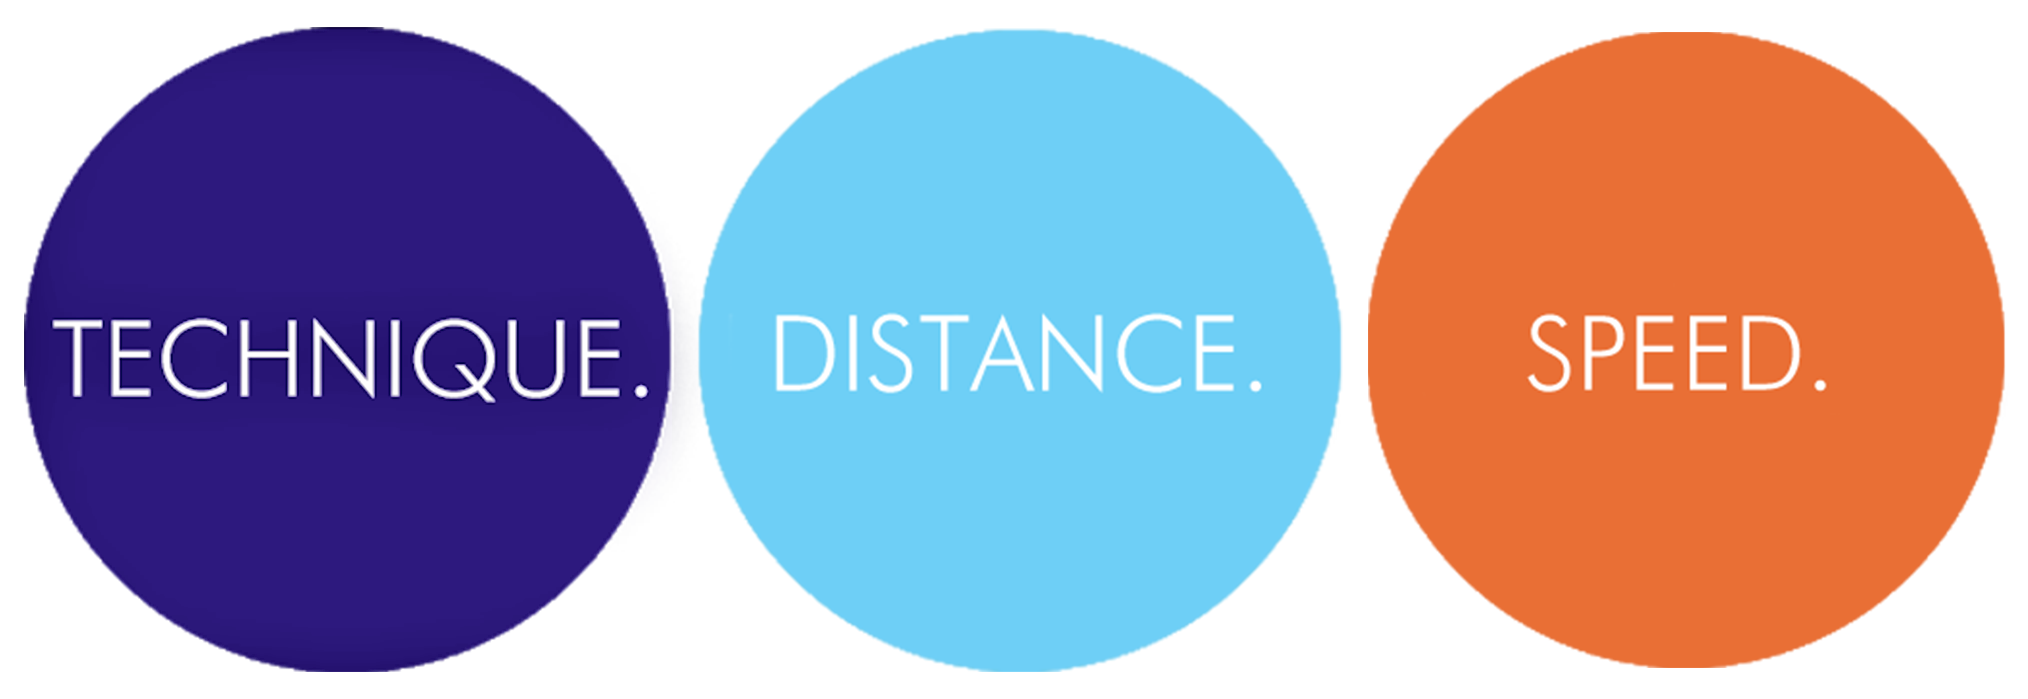 technique distance speed.png